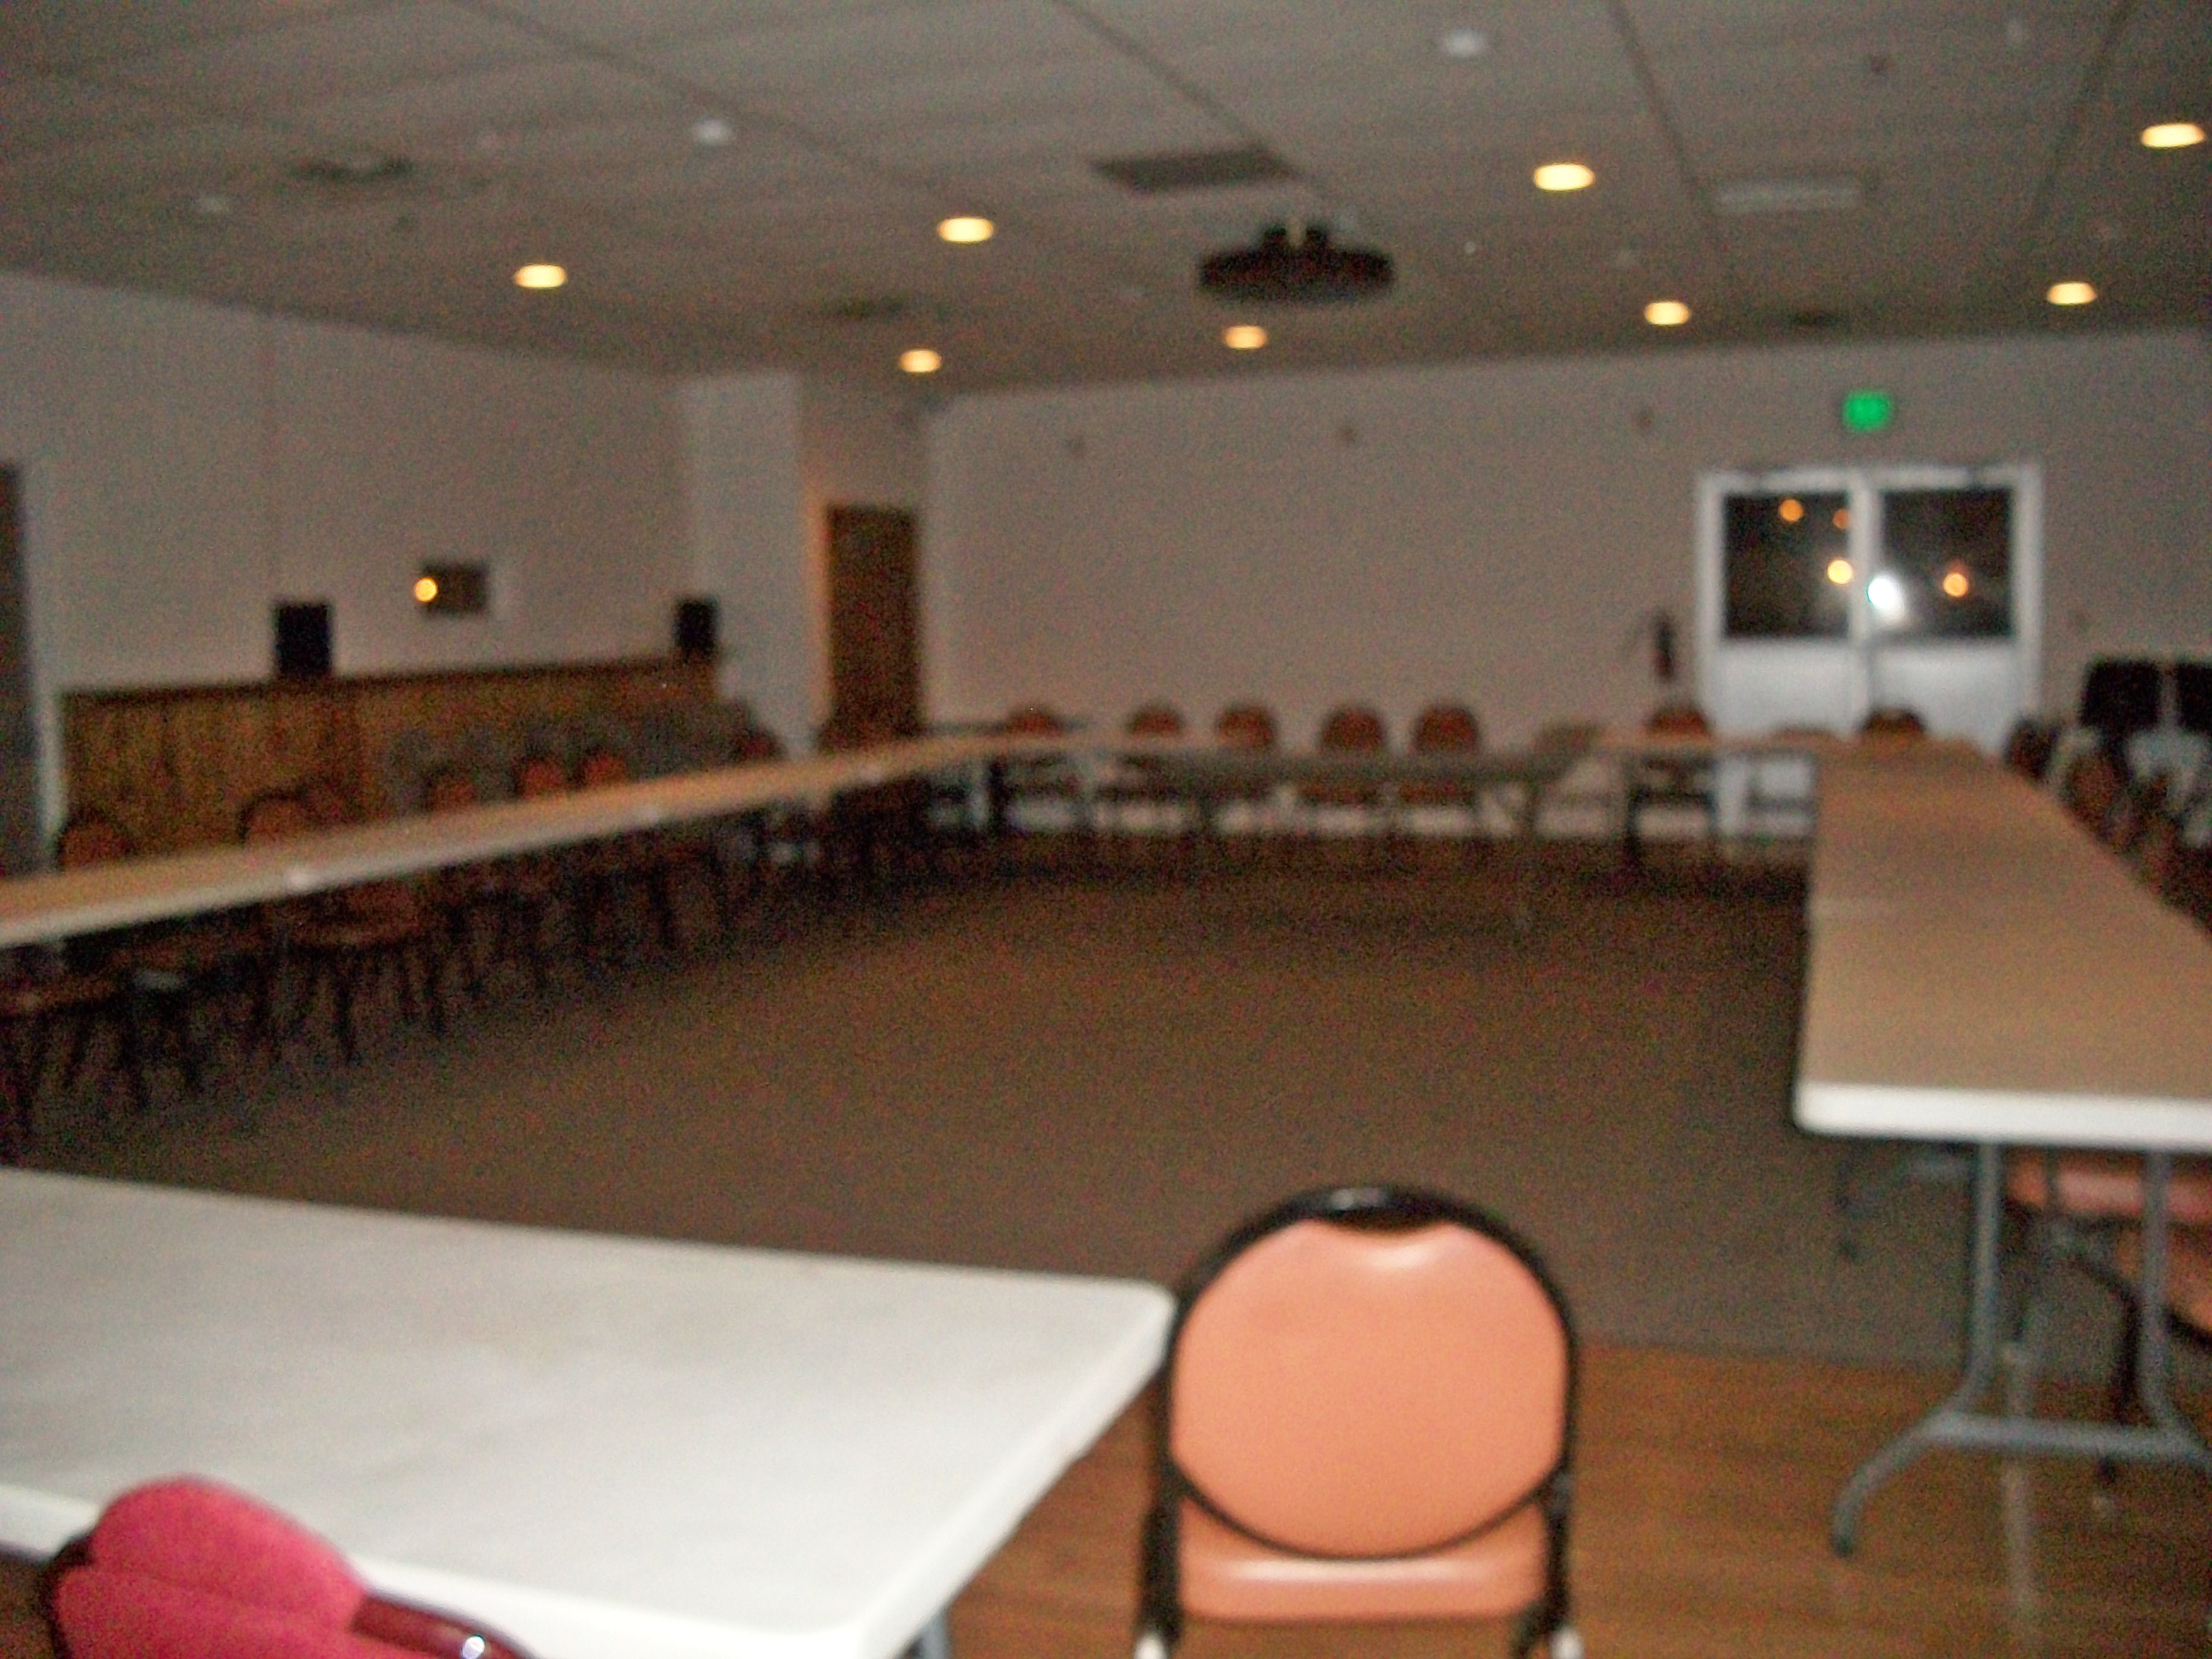 A picture of the large banquet room with its tables arranged in a large square for meetings. The room's primary entrance is in the background.